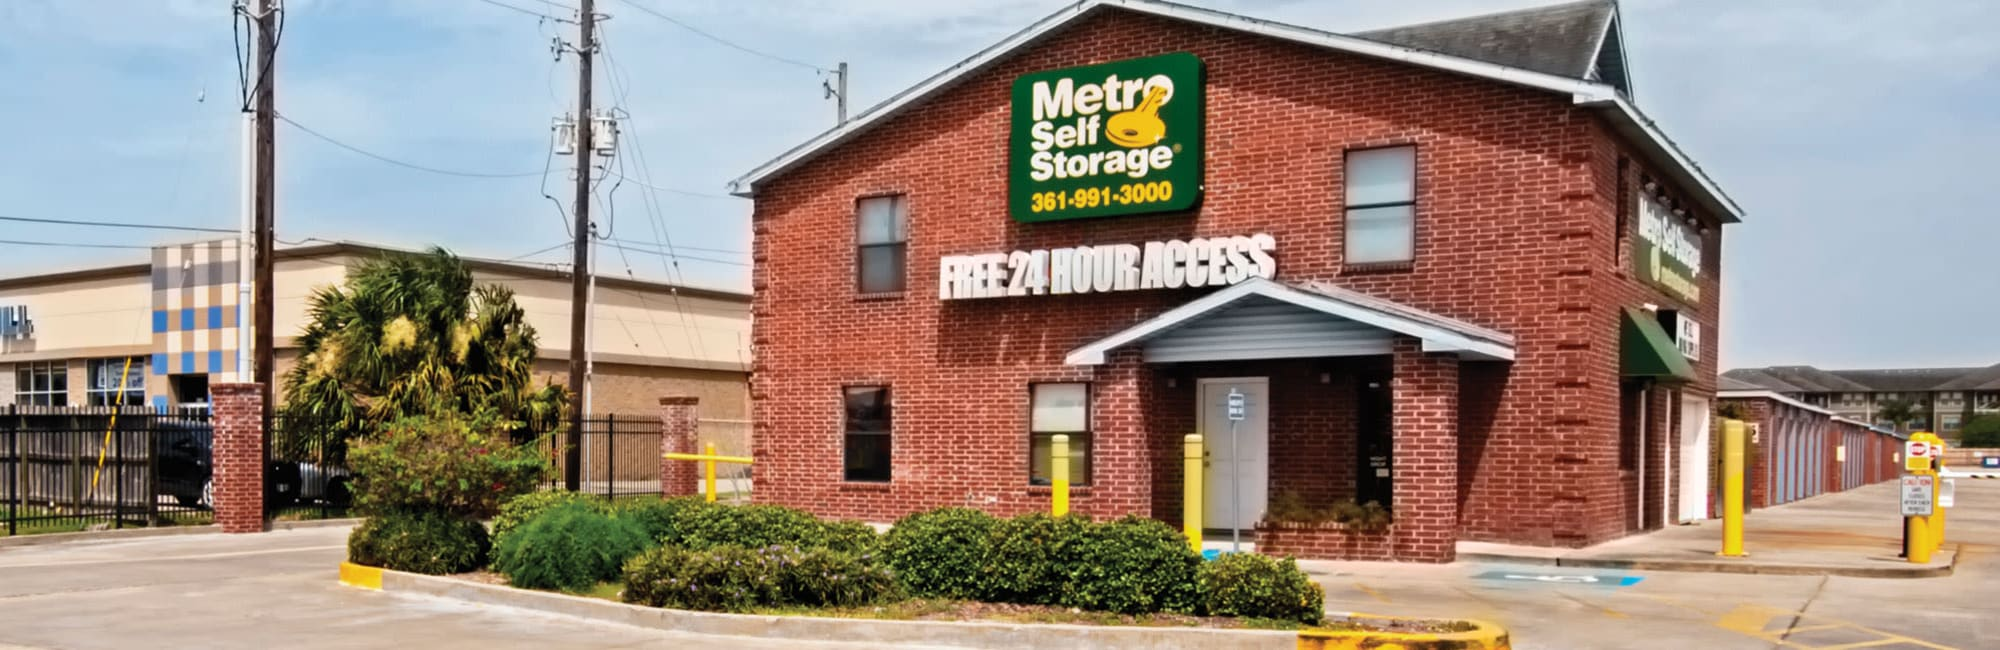 Metro Self Storage in Corpus Christi, TX